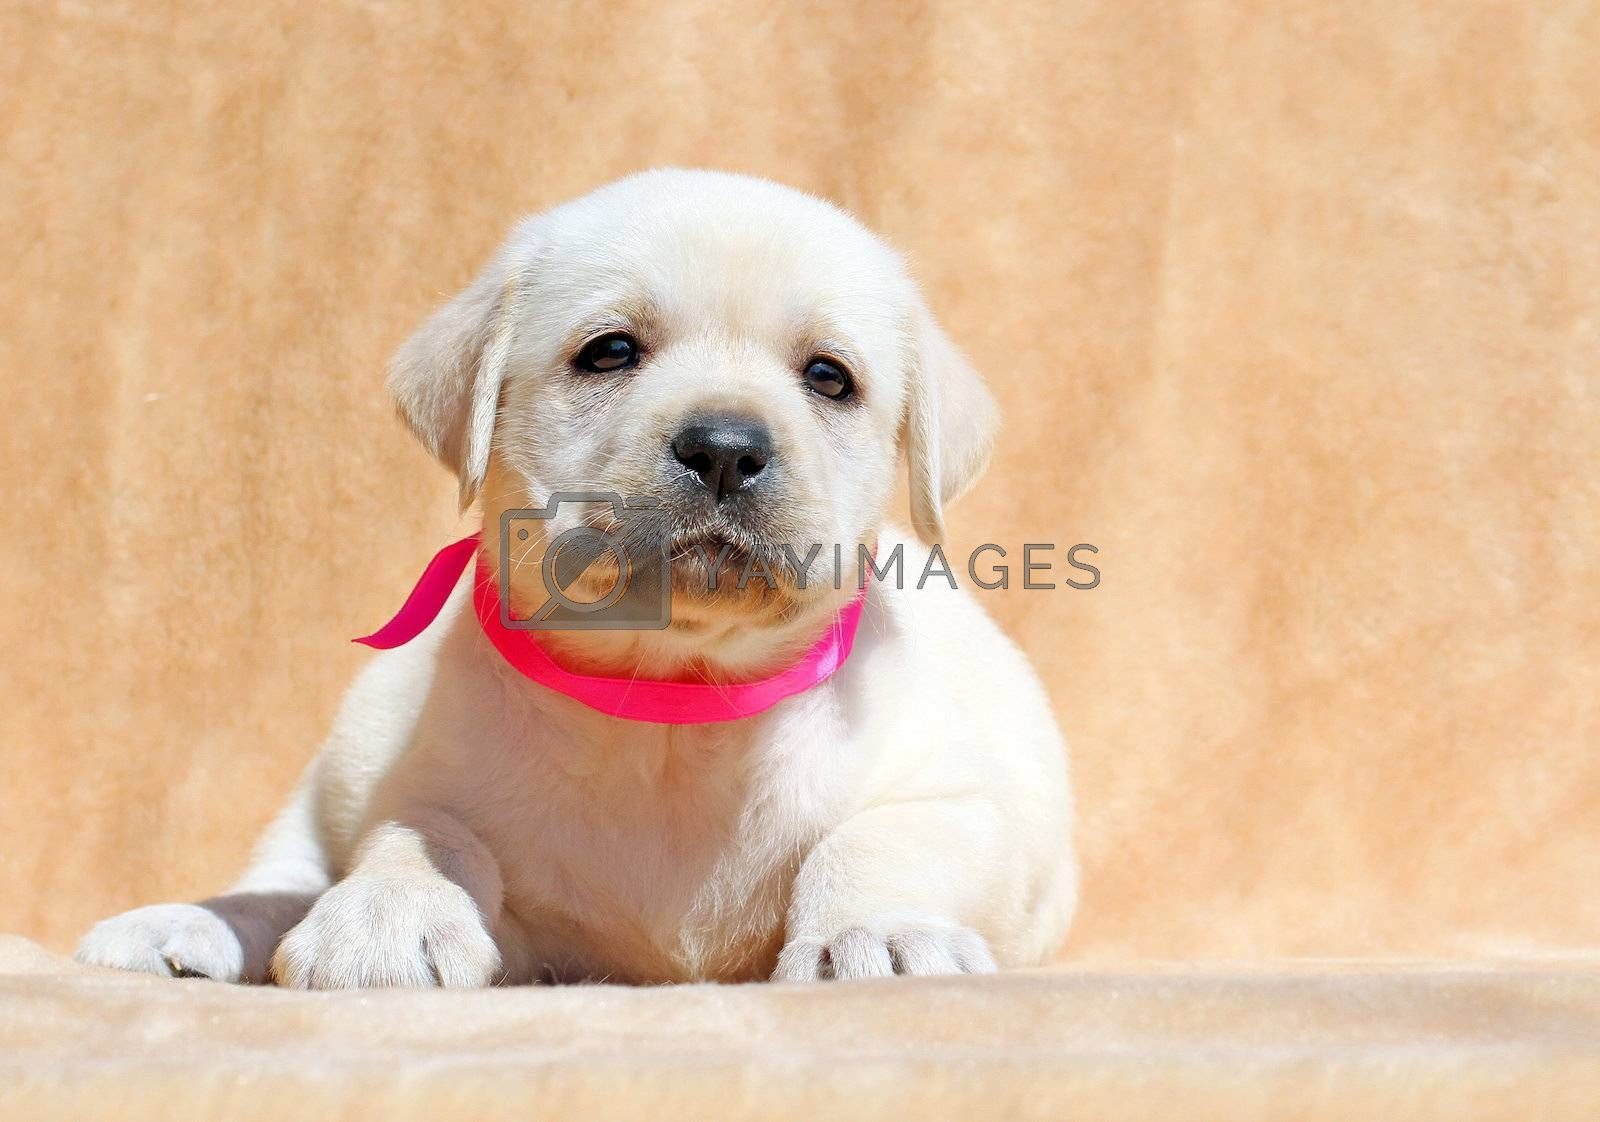 Royalty free image of yellow labrador puppy portrait close up by Yarvet